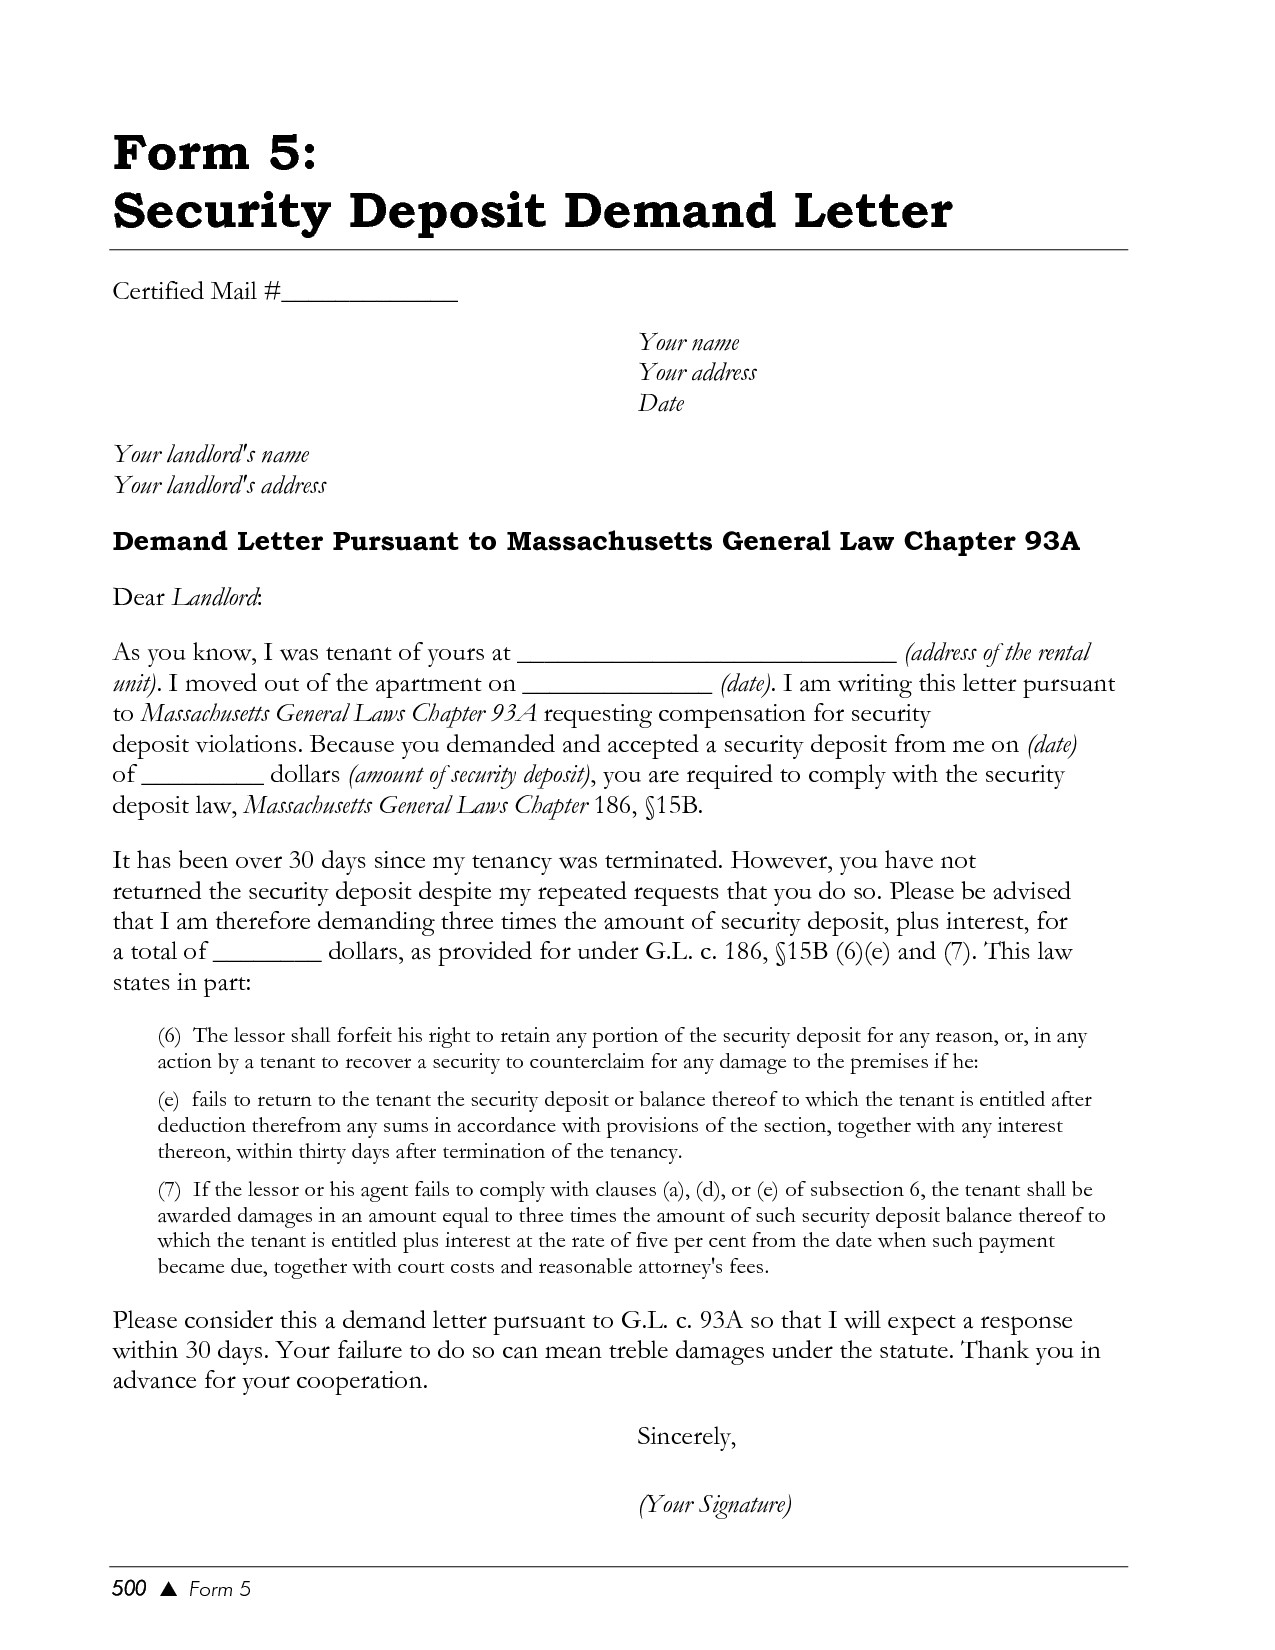 security deposit demand letter template Collection-Landlord letter returning security deposit sample demand elemental yet 12-g